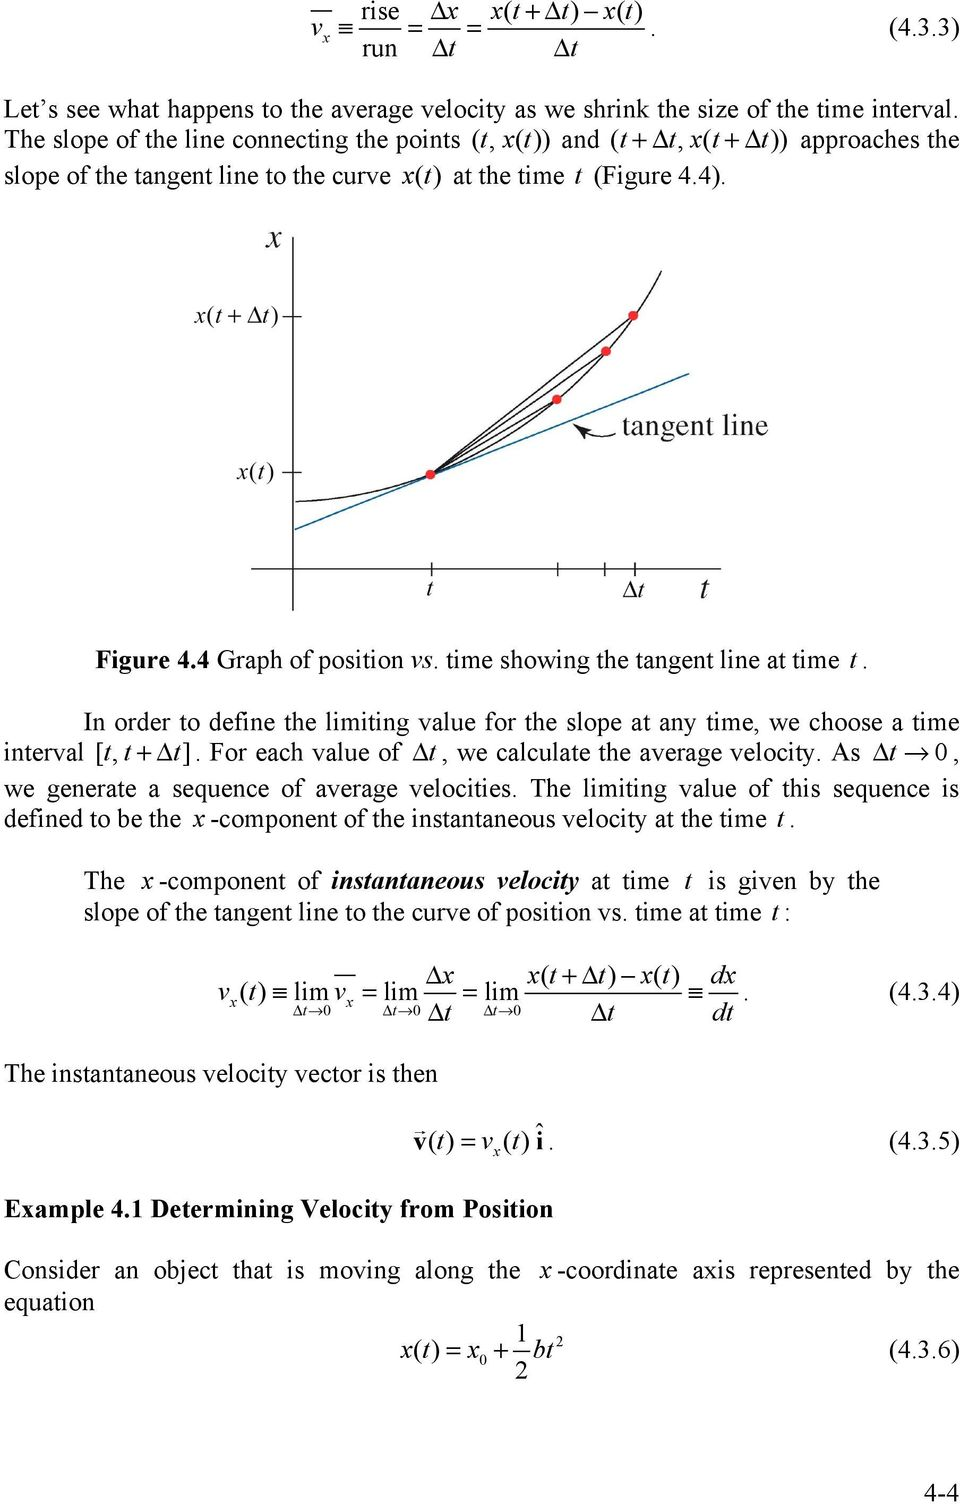 limiting value for the slope at any time, we choose a time interval [ t, t + Δ t] For each value of Δ t, we calculate the average velocity As Δt 0, we generate a sequence of average velocities The